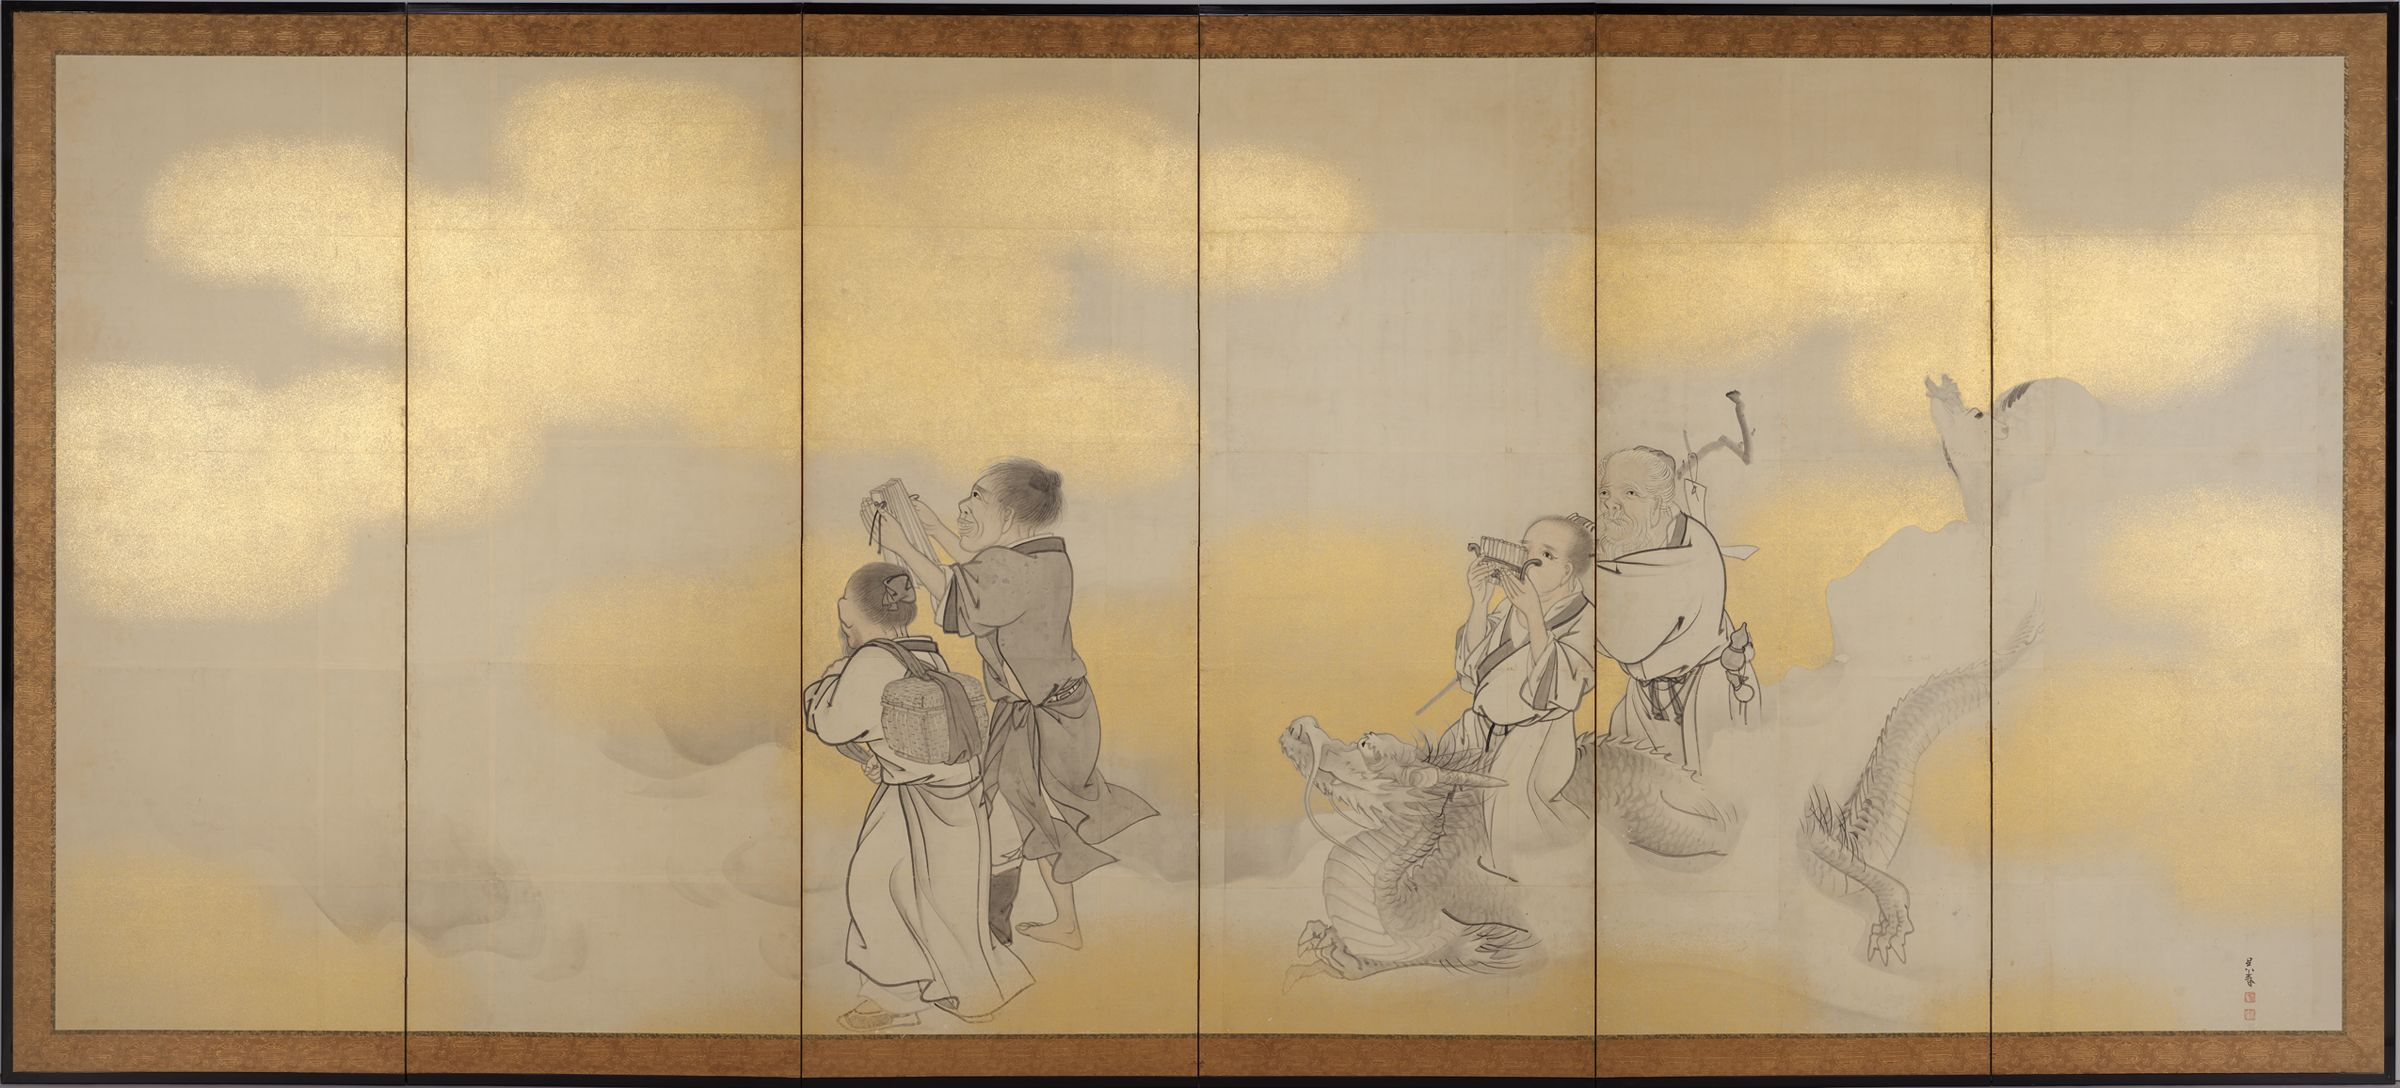 Seven Chinese Immortals (Right Screen)